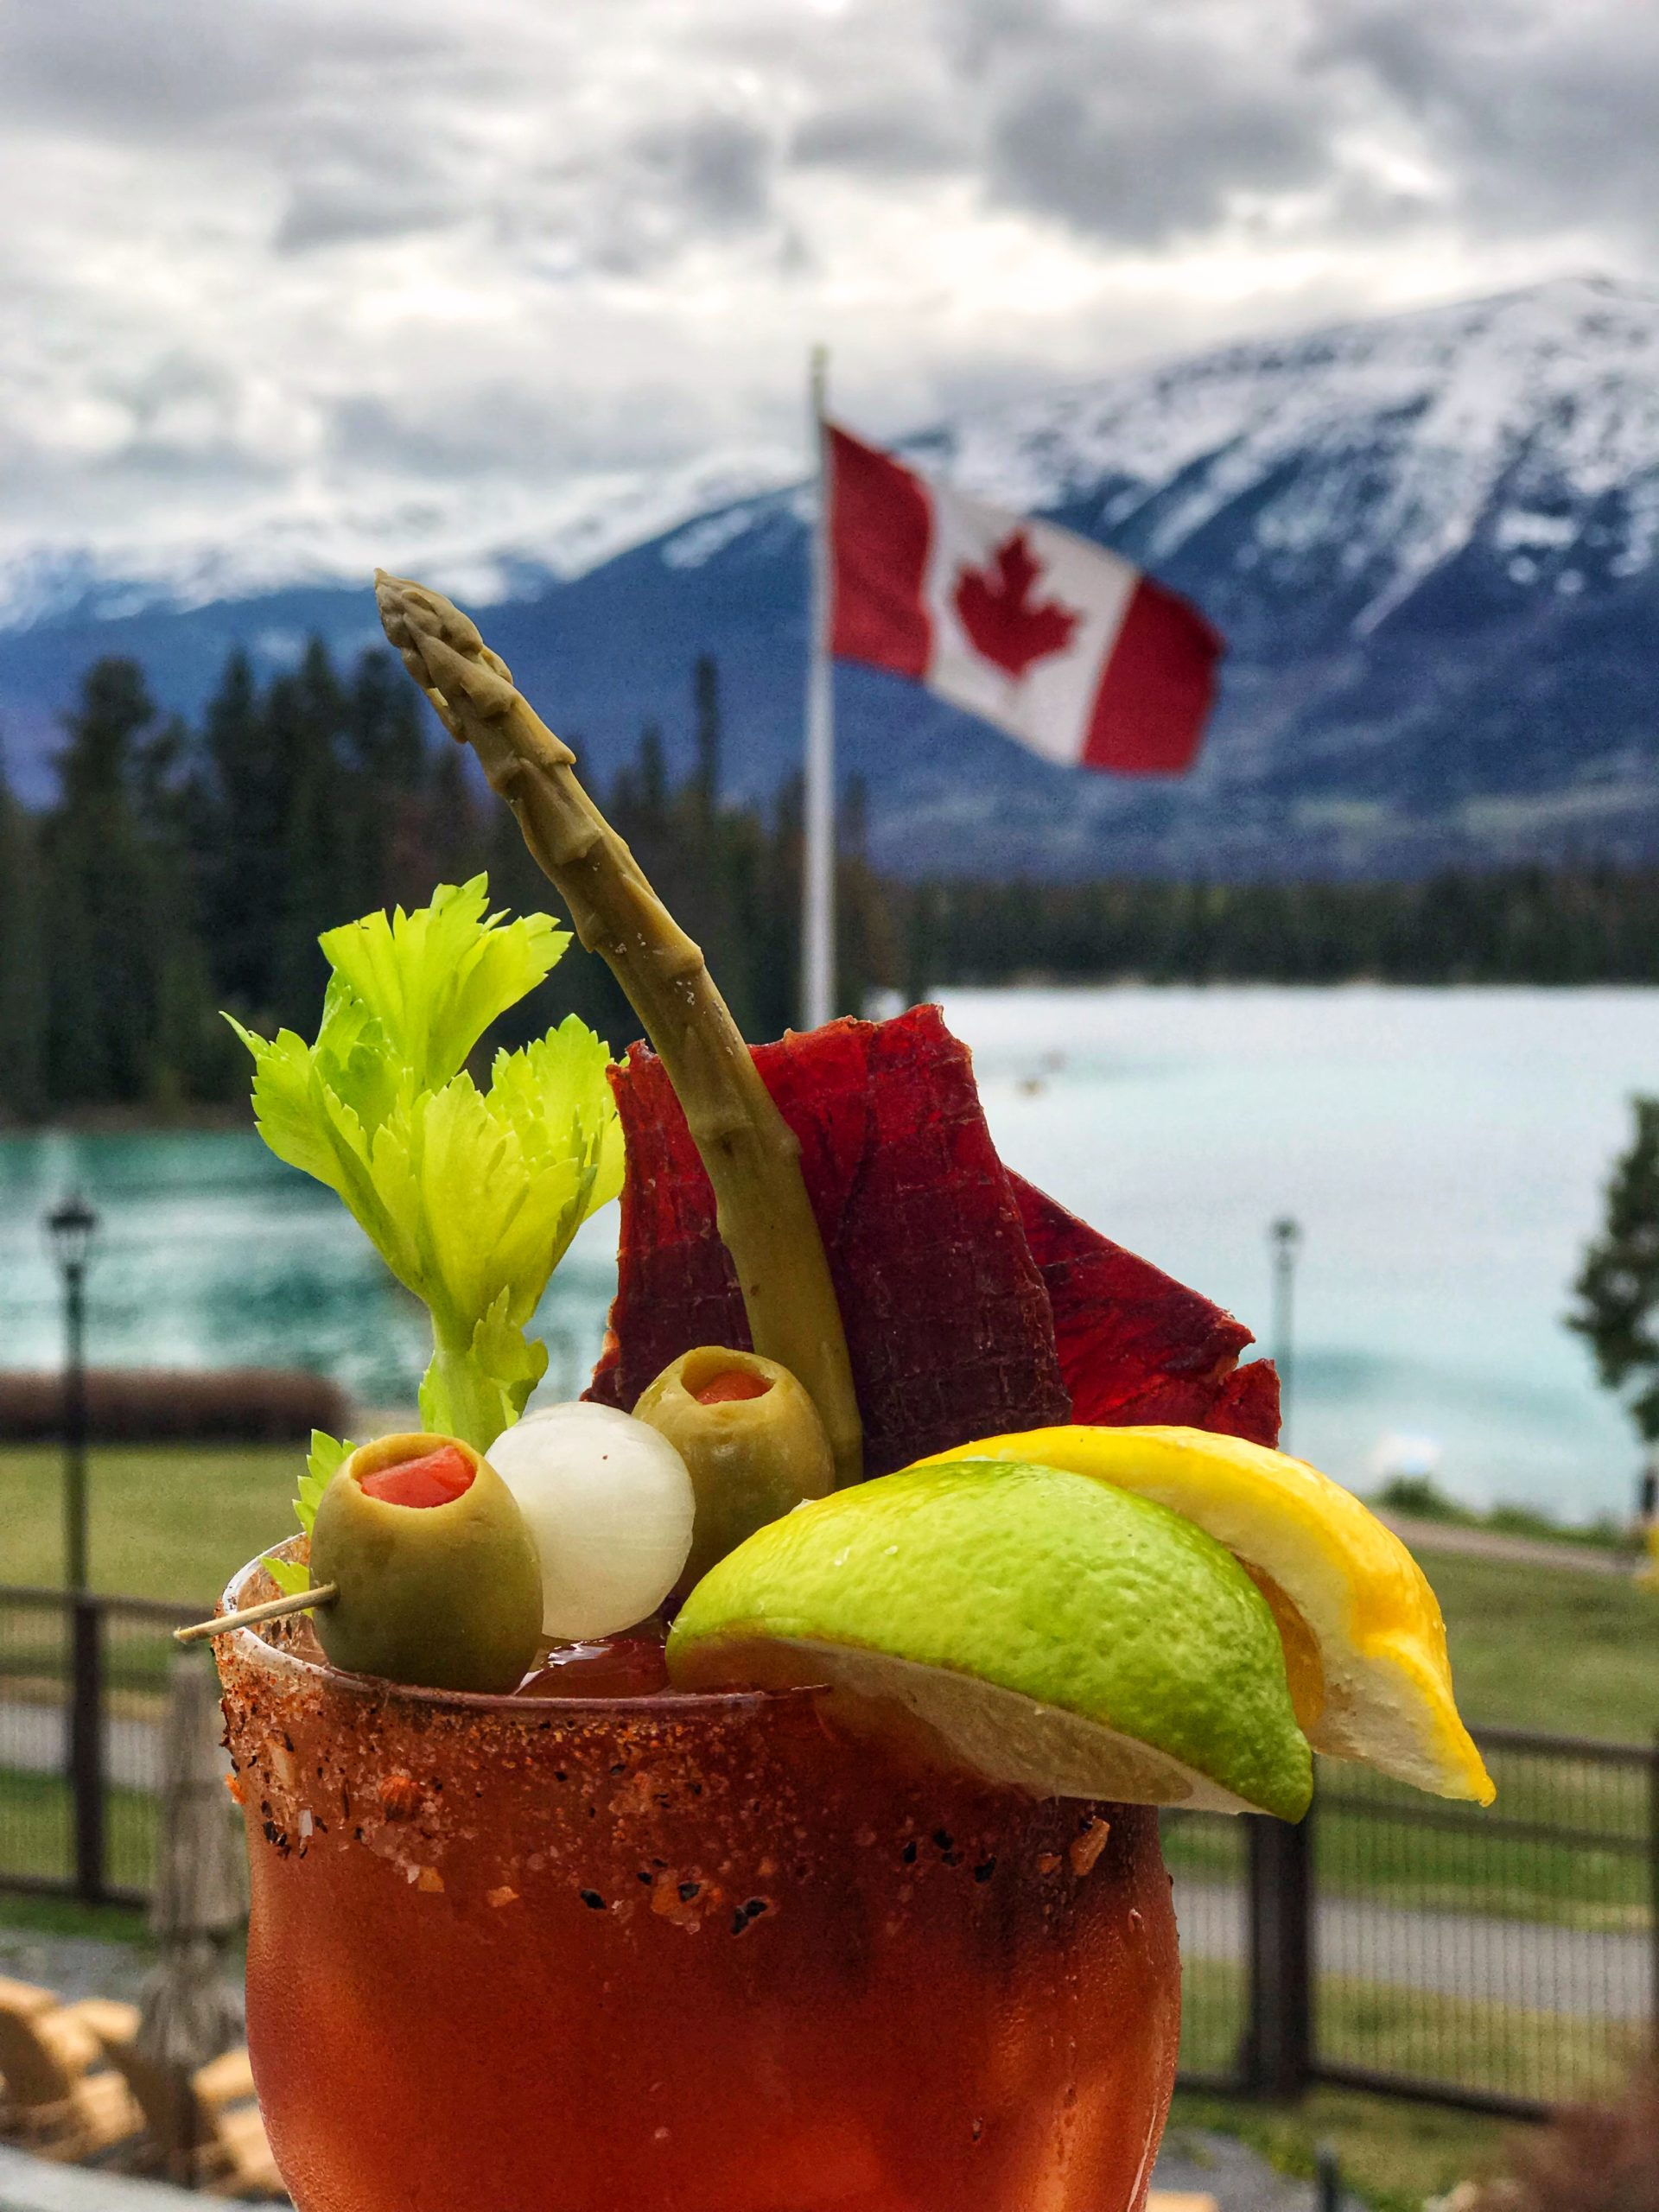 TOSS BACK A TIPPLE THIS NATIONAL CAESAR DAY